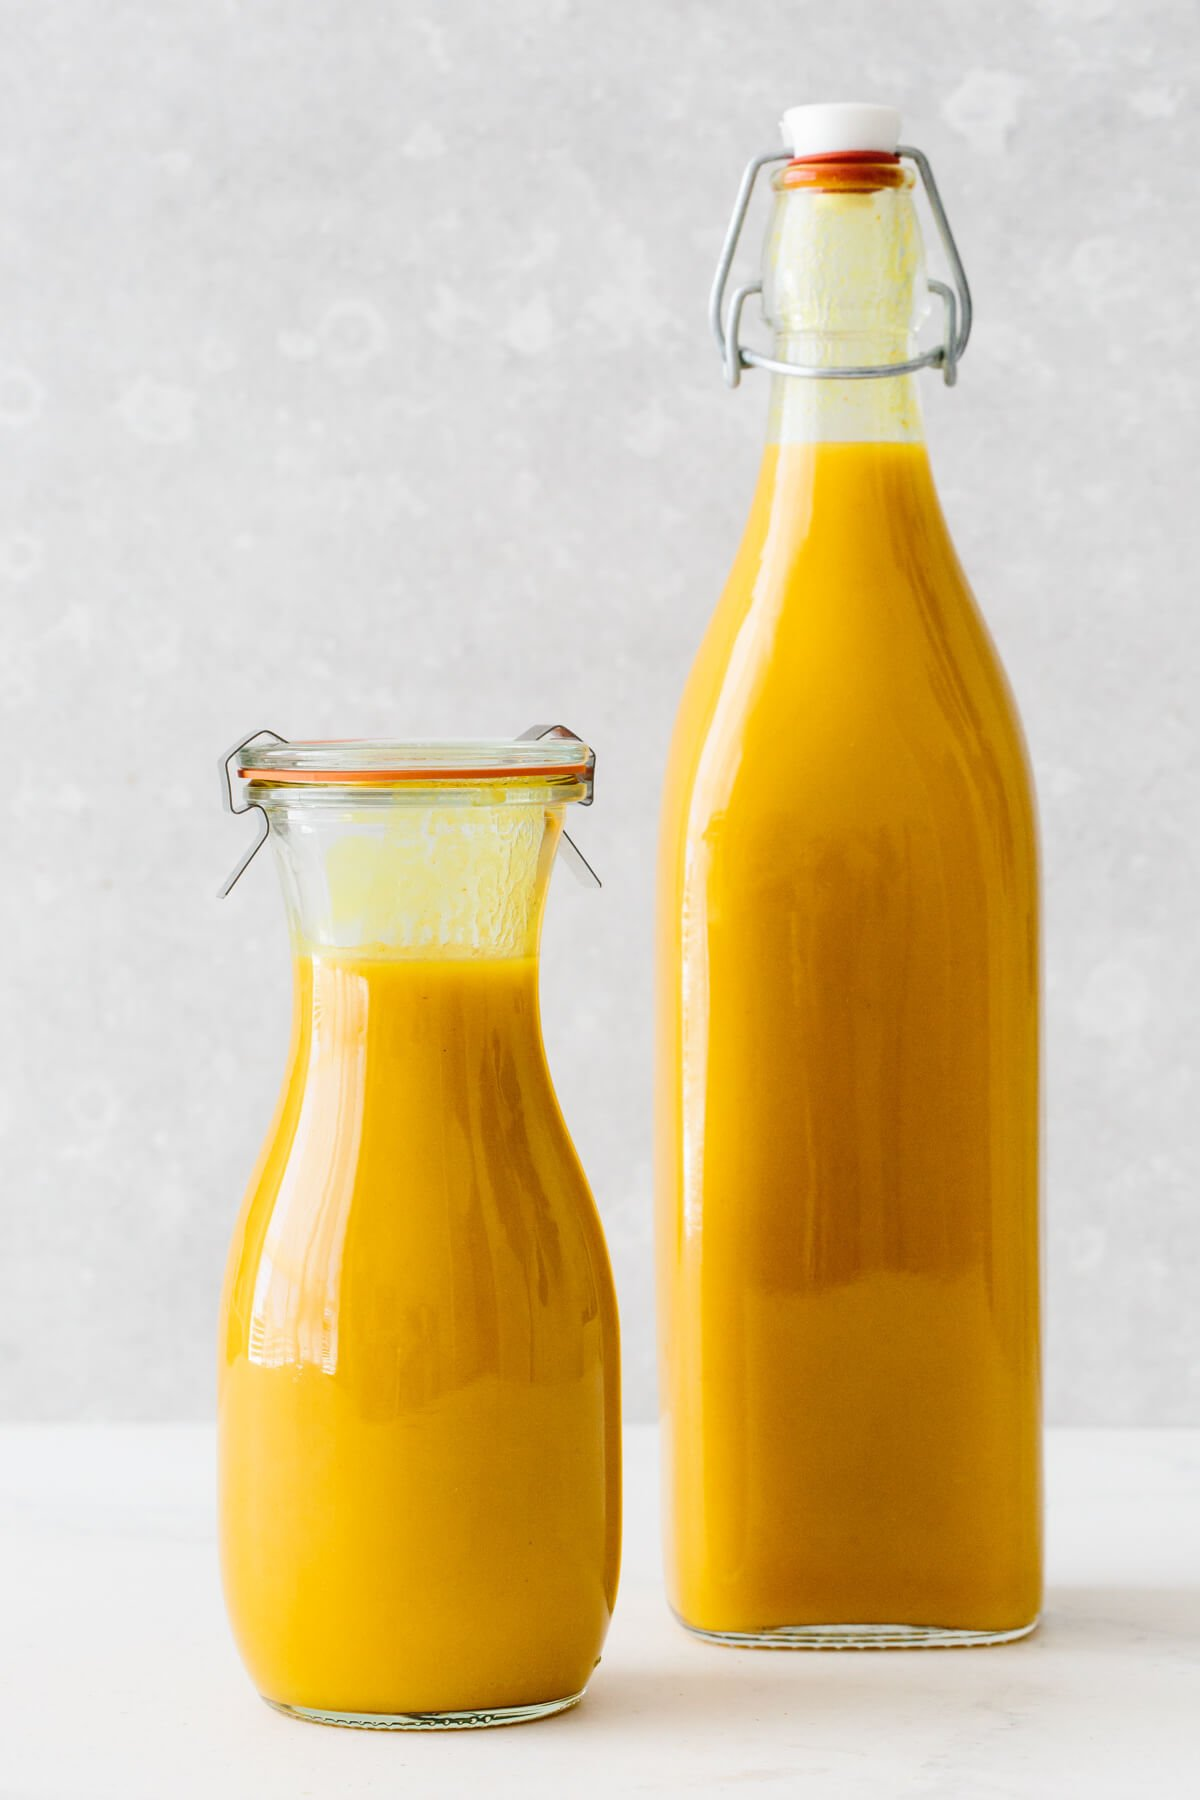 Jamu juice in two glass storage containers.